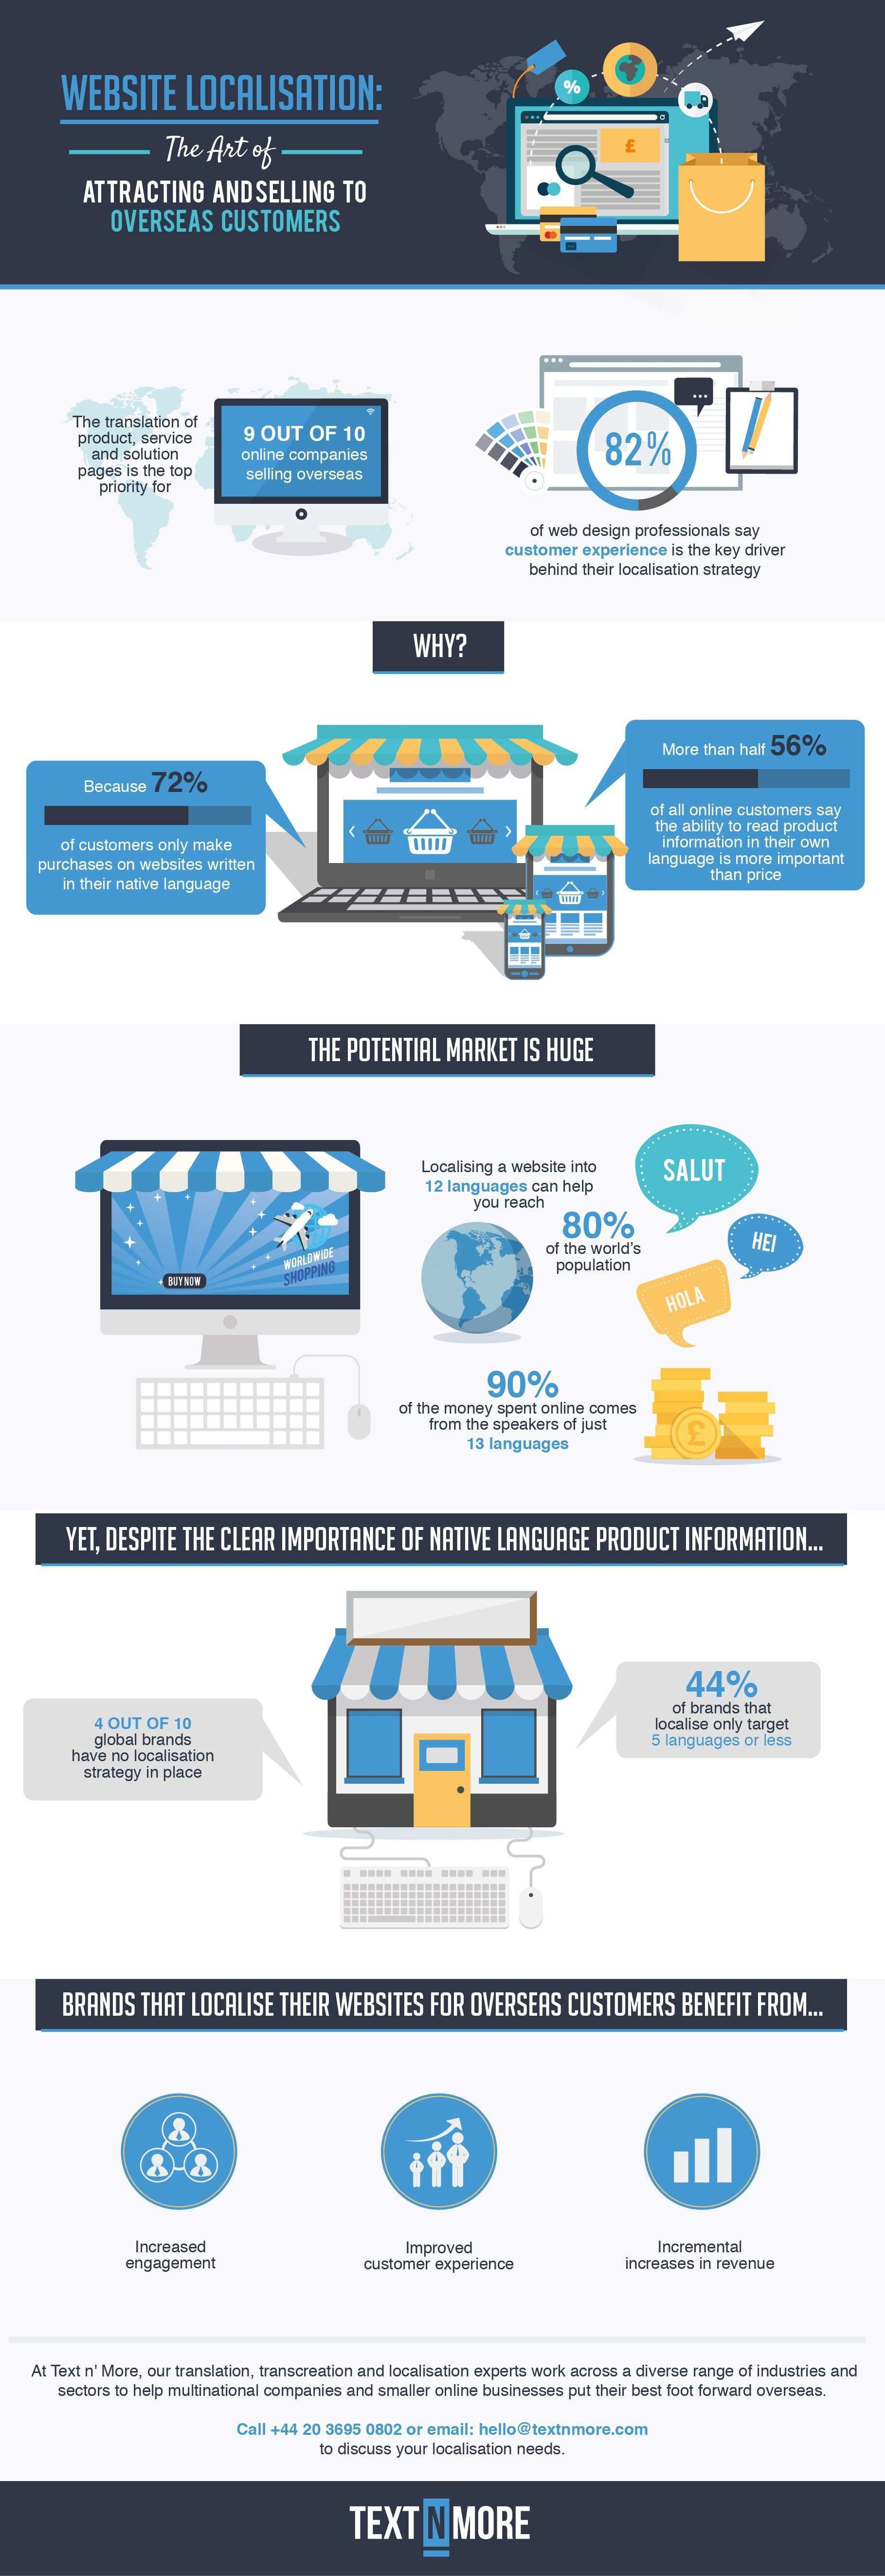 Website Localisation The Art of Attracting and Selling to Overseas